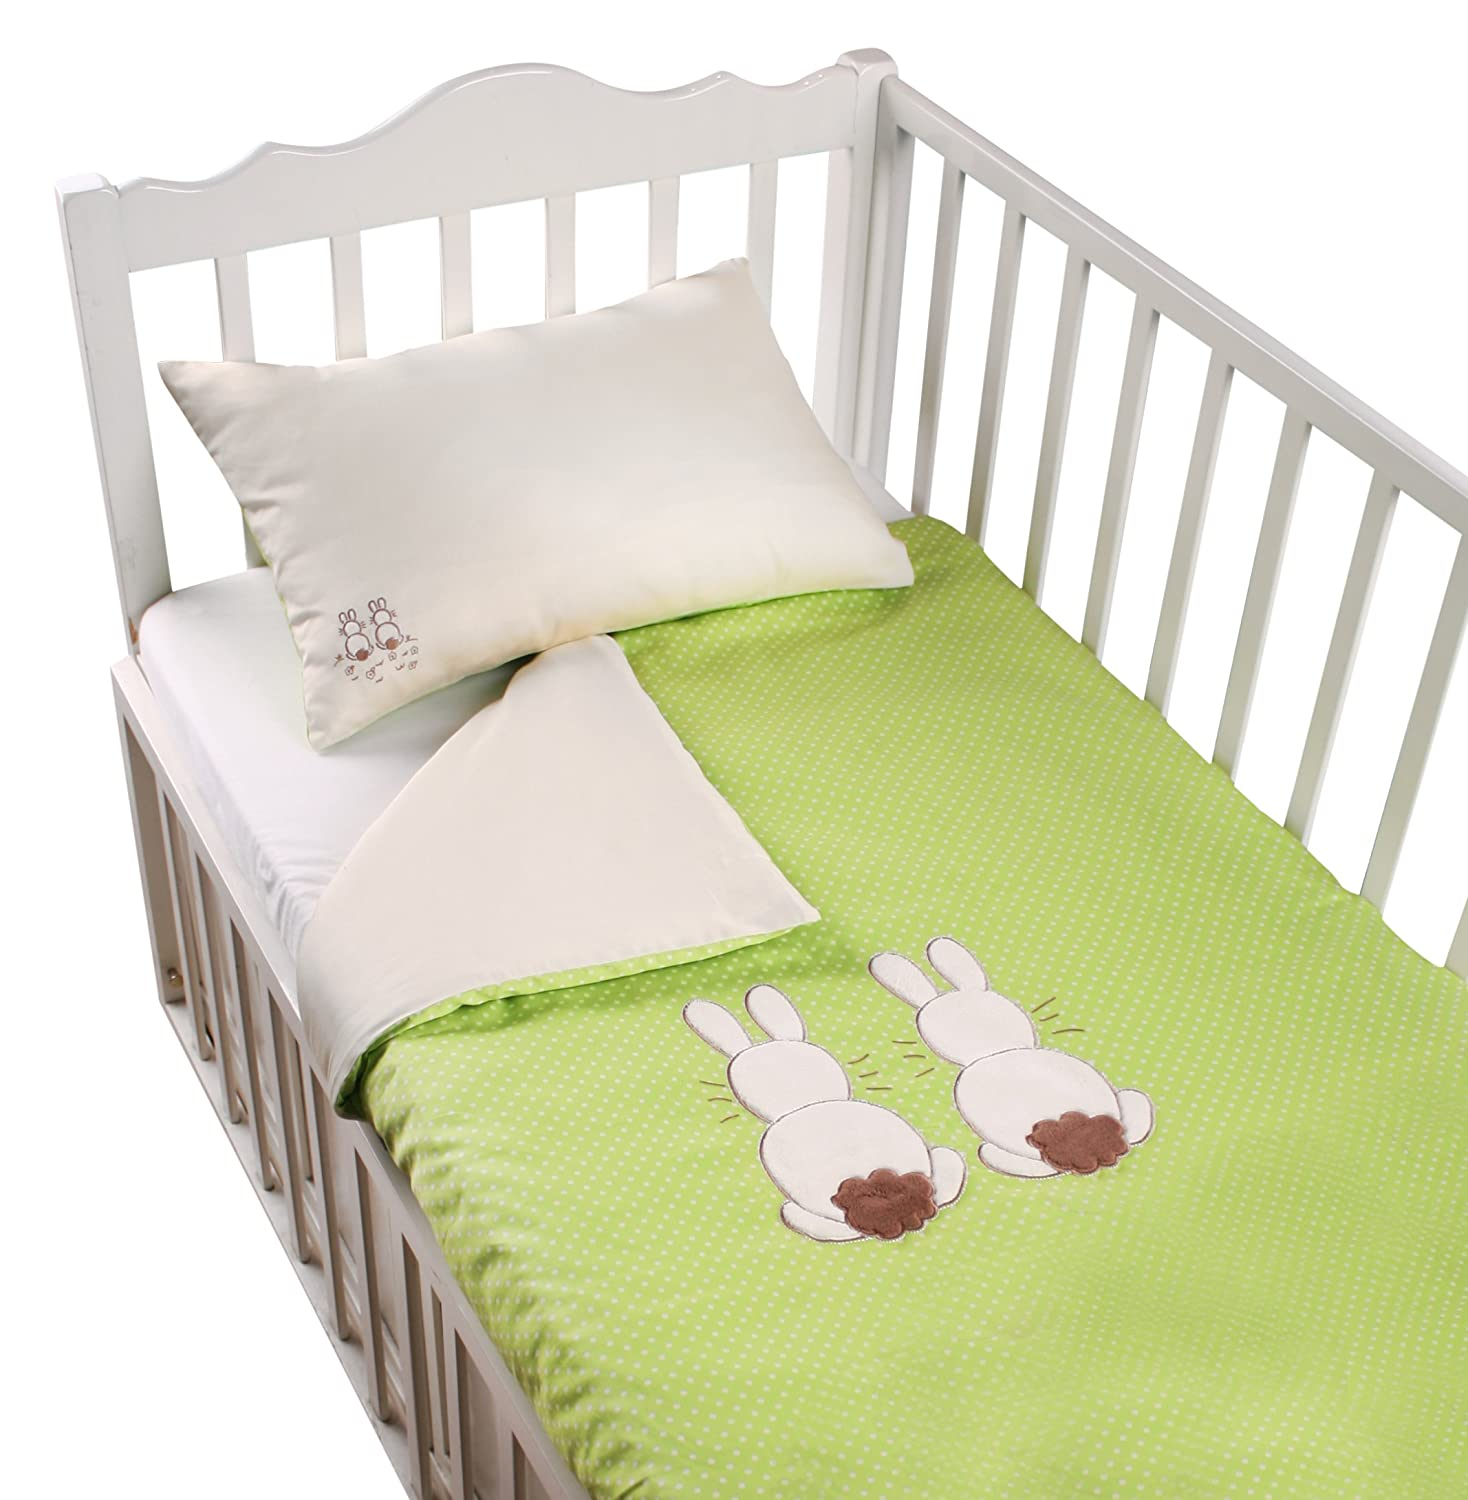 Tots by Smart Rike 280 203 Joy Bed Linen Set, 100% Cotton Satin Duvet Cover 100 x 135 cm and 1 Pillowcase 60 x 40 cm, Rabbit green ToTs by Smartrike 280-203